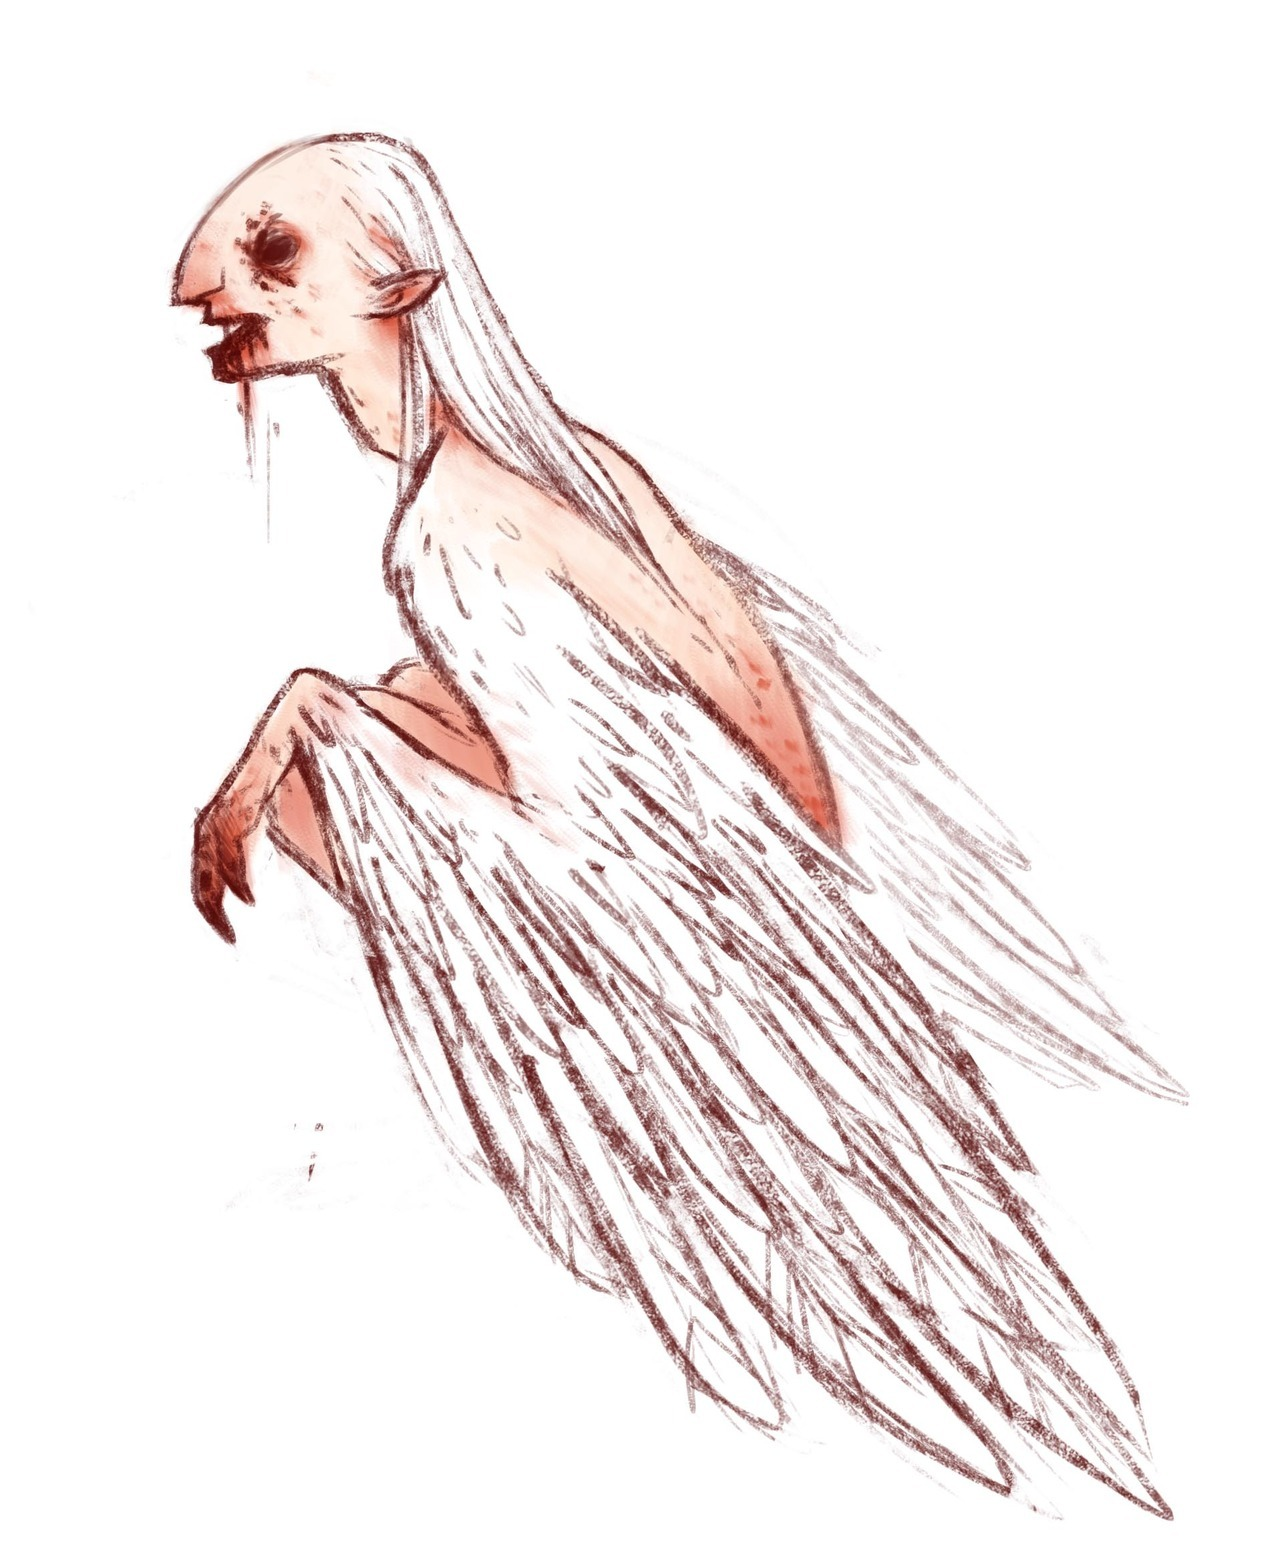 decided to jump on the bandwagon here's day 1: a harpy~